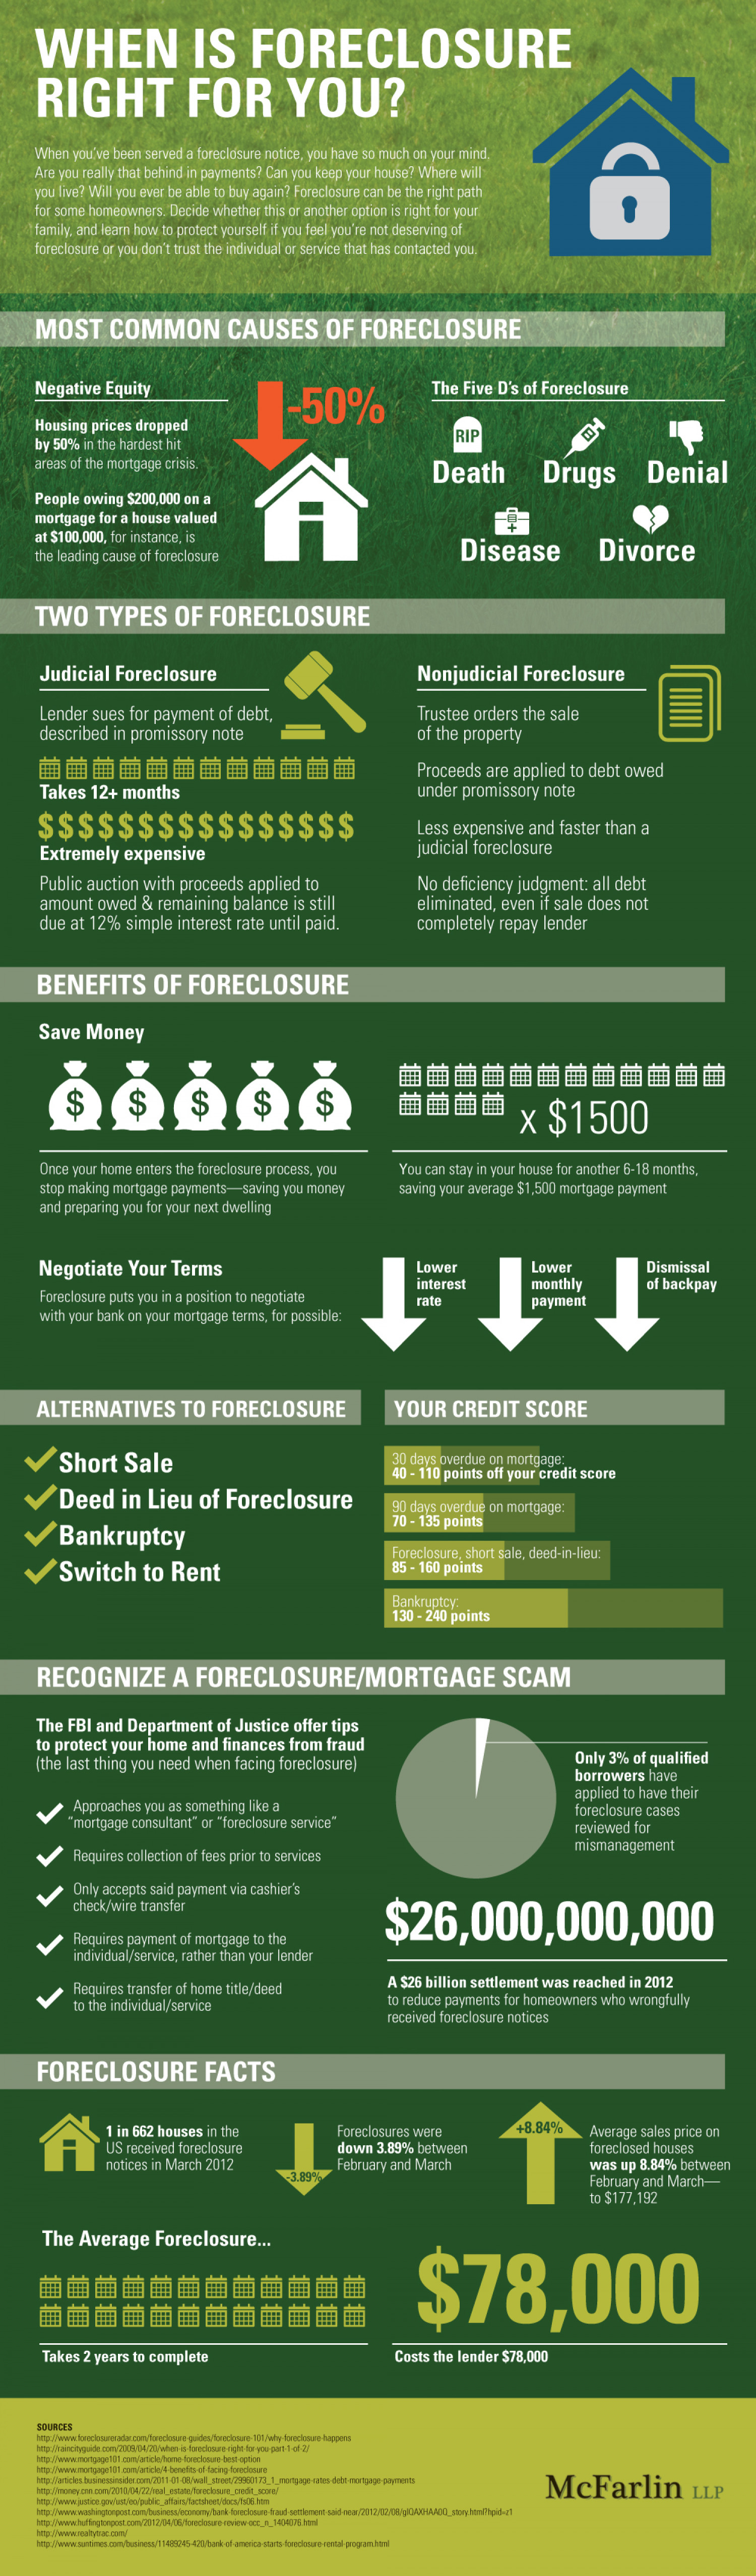 When Is Foreclosure Right For You? Infographic